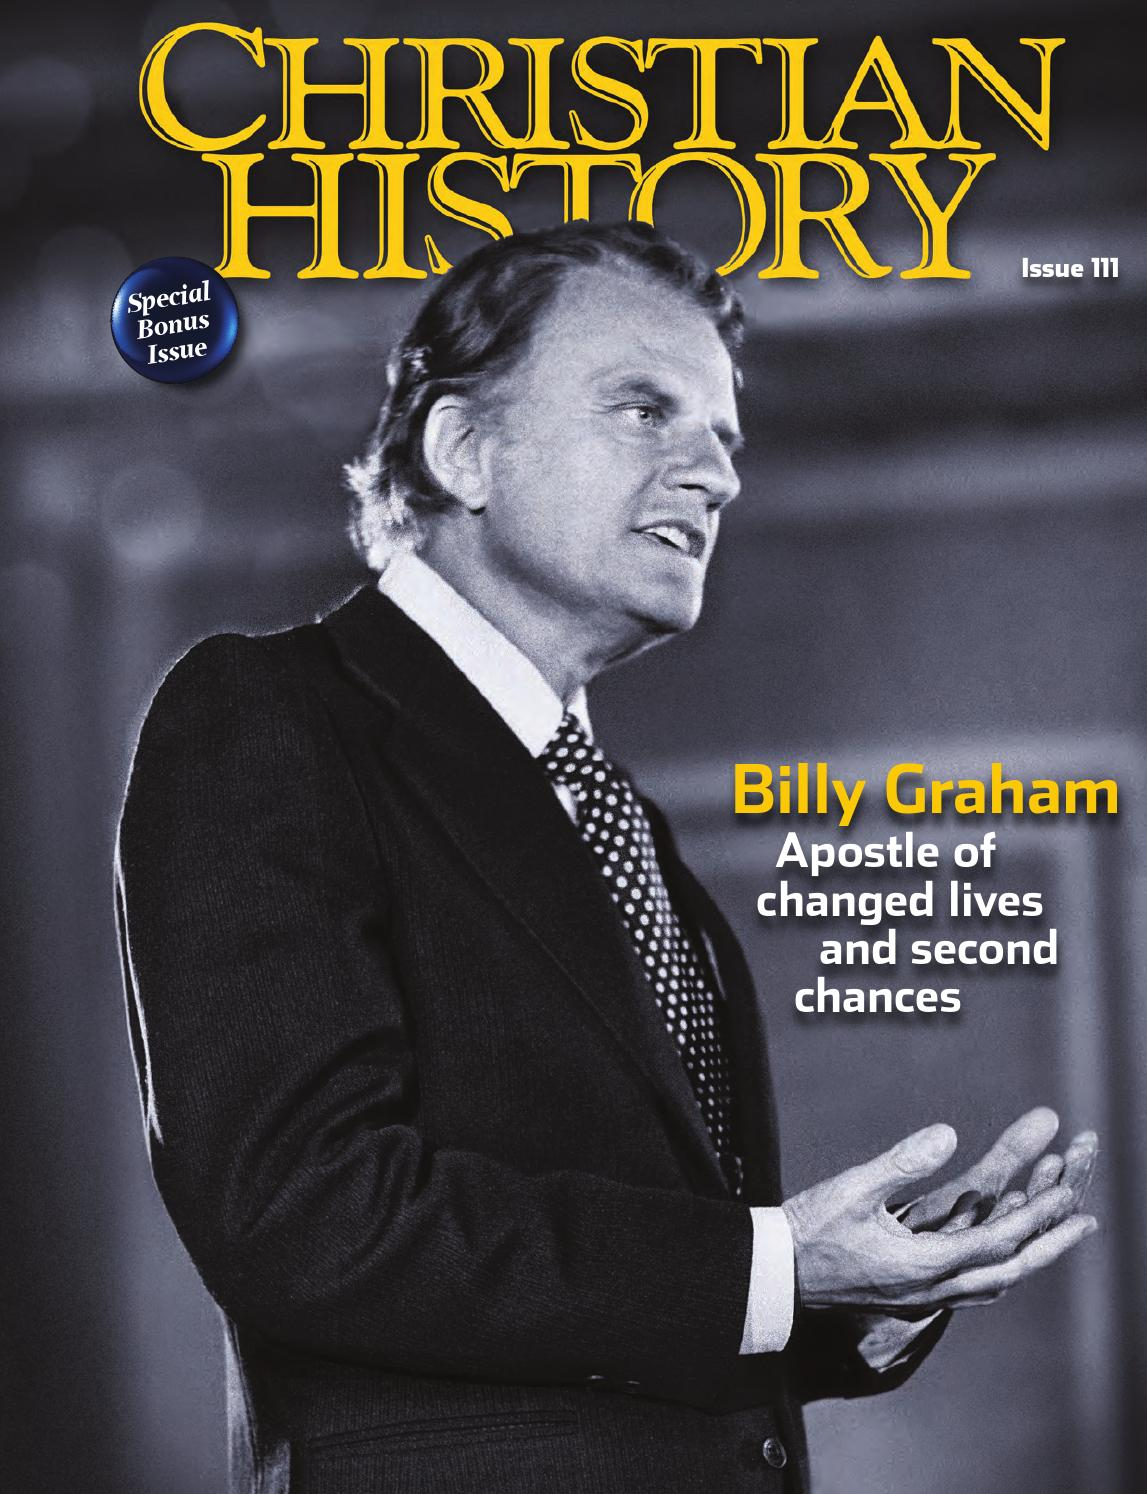 Christian History 111: Billy Graham by Christian History Institute - issuu